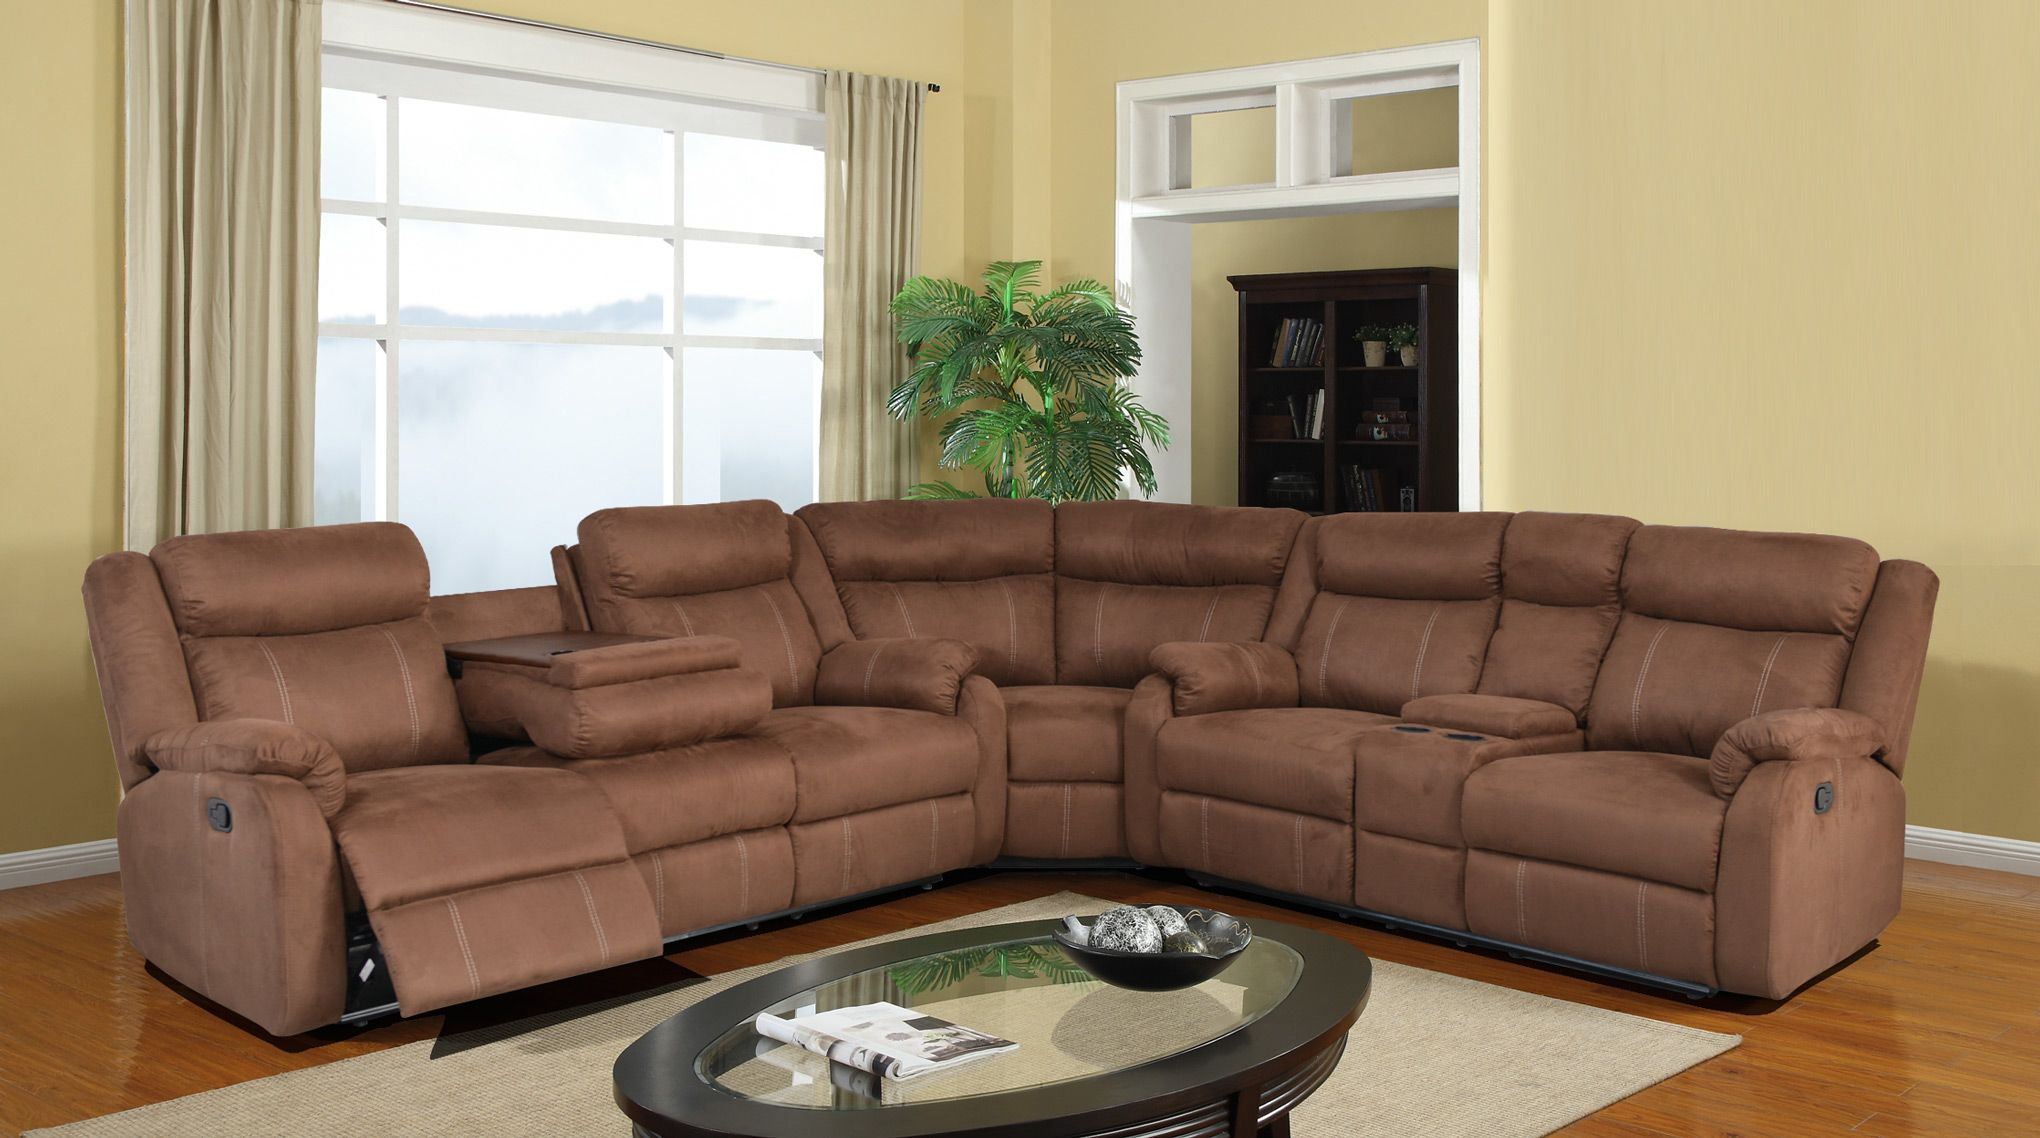 The U9303 Chocolate Reclining Sectional from Global Furniture USA